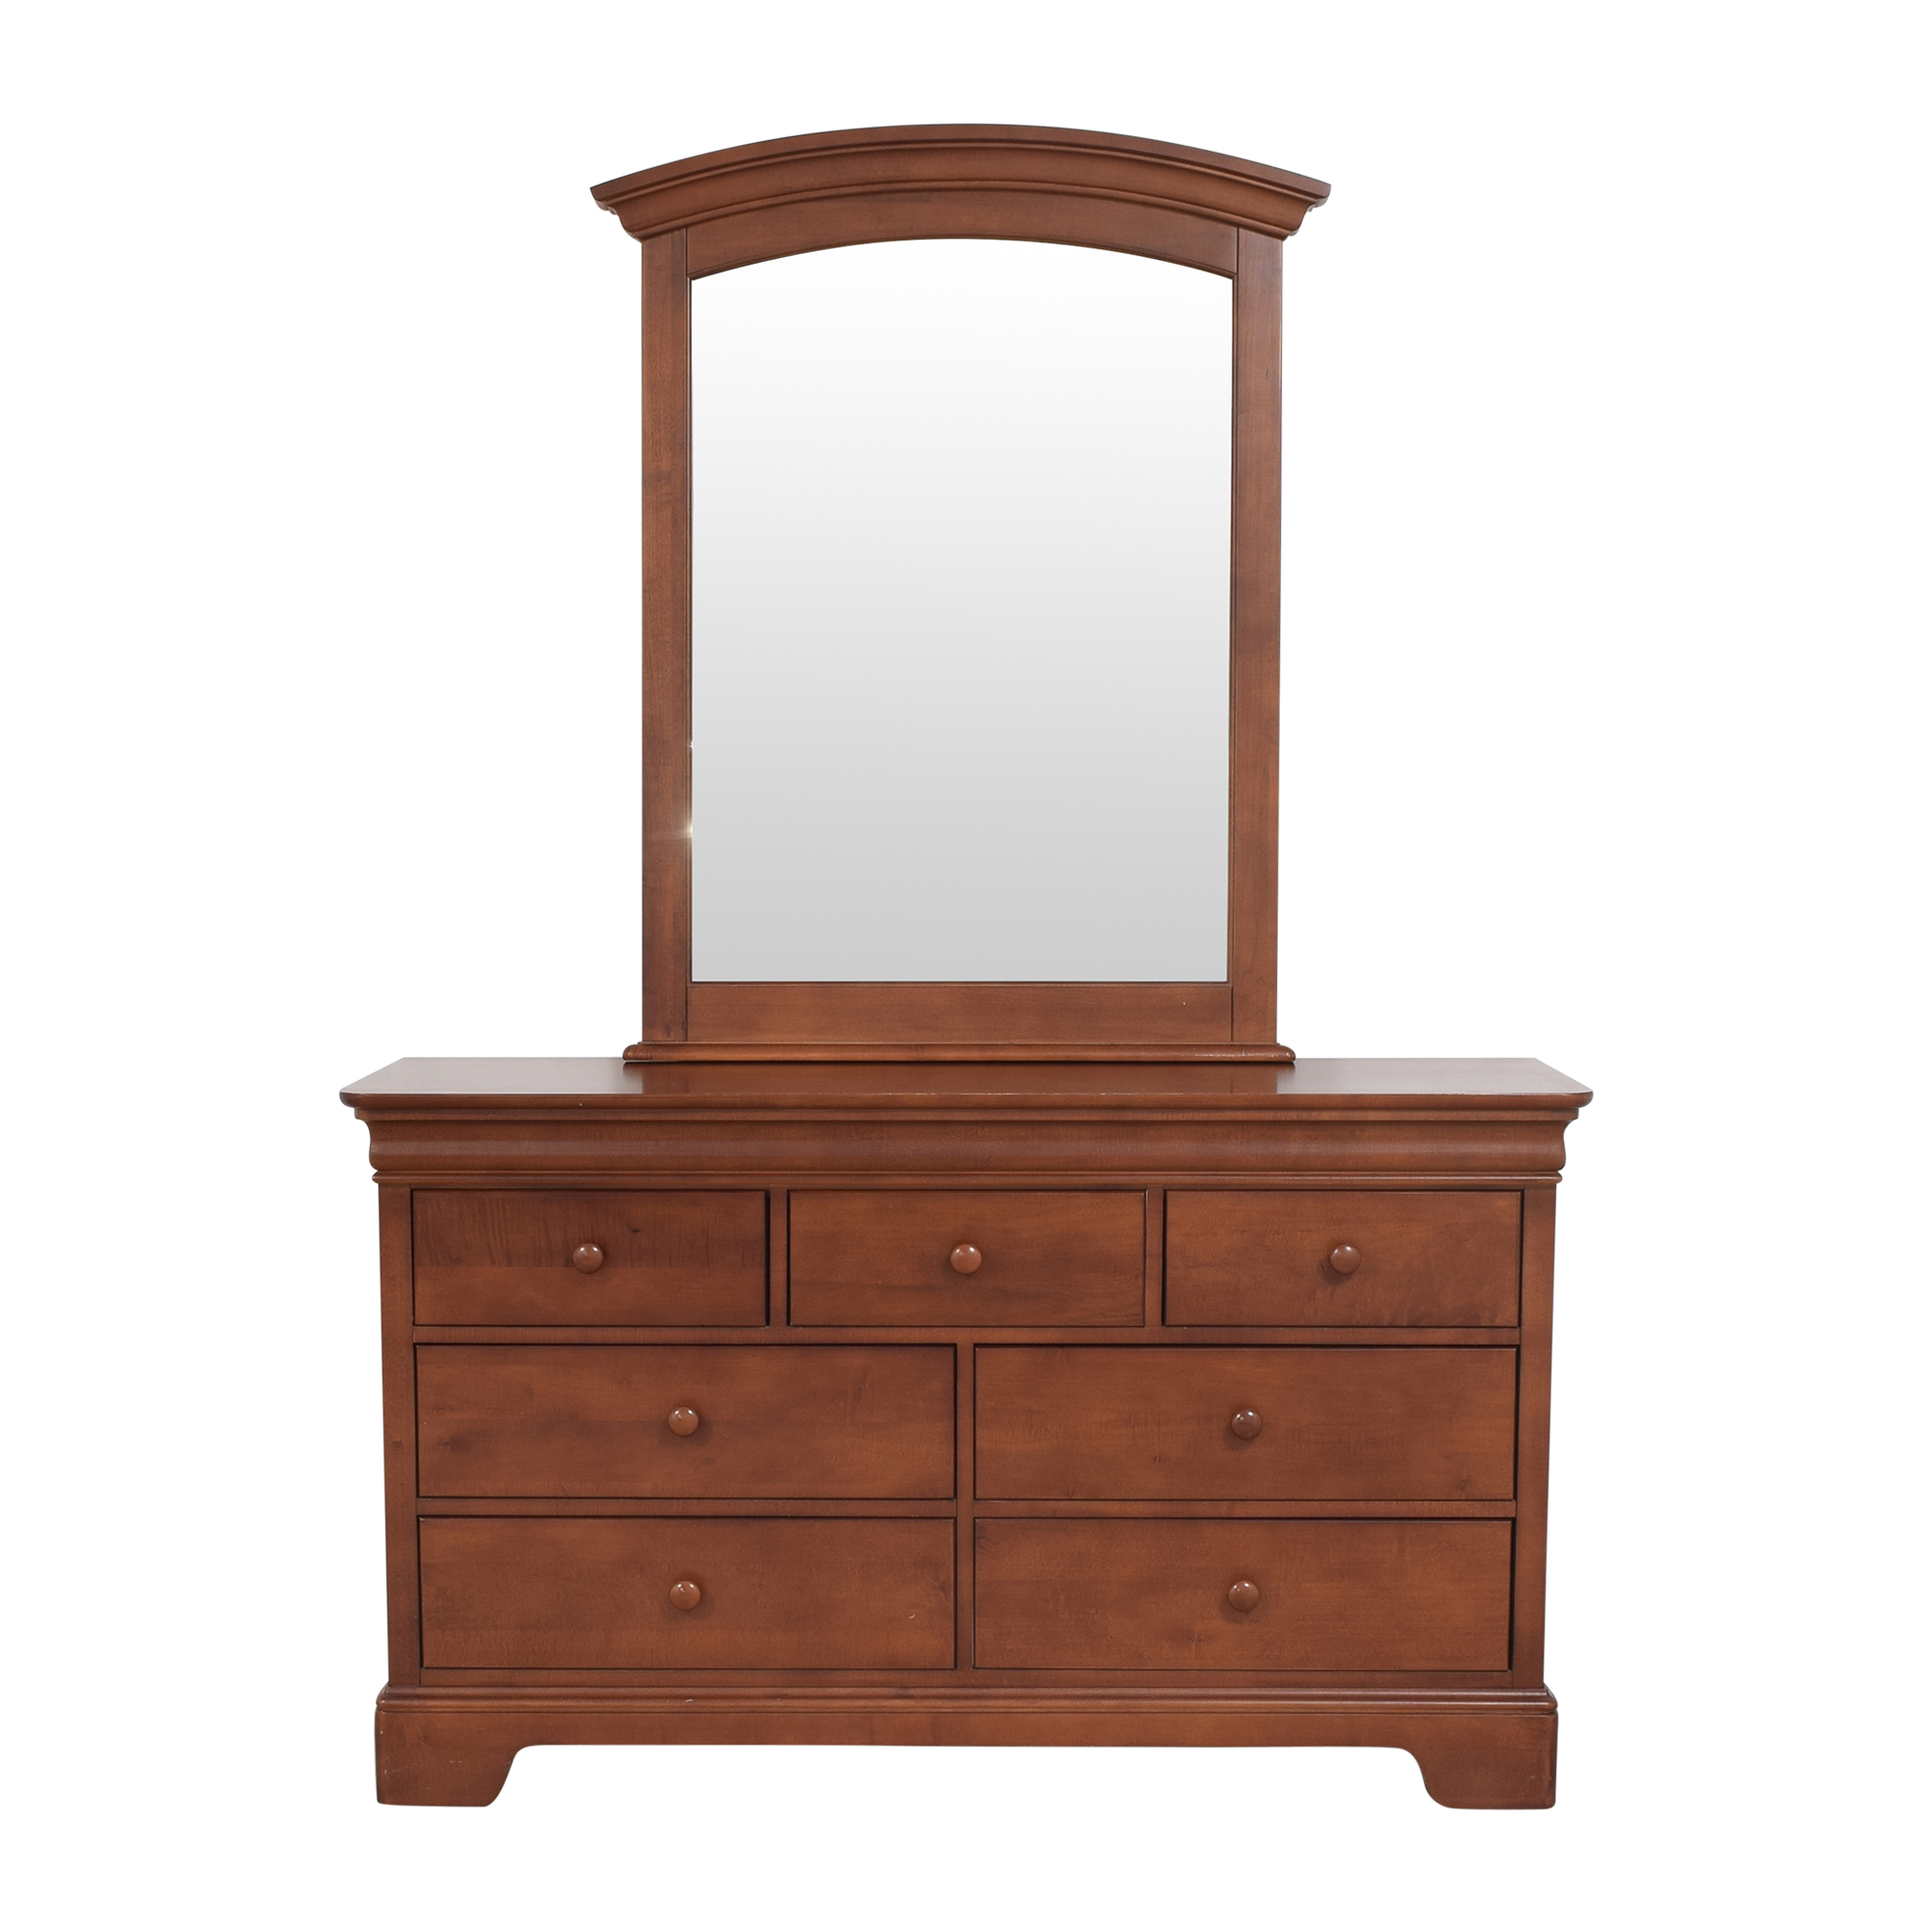 Stanley Furniture Stanley Furniture Young America Double Dresser with Mirror price